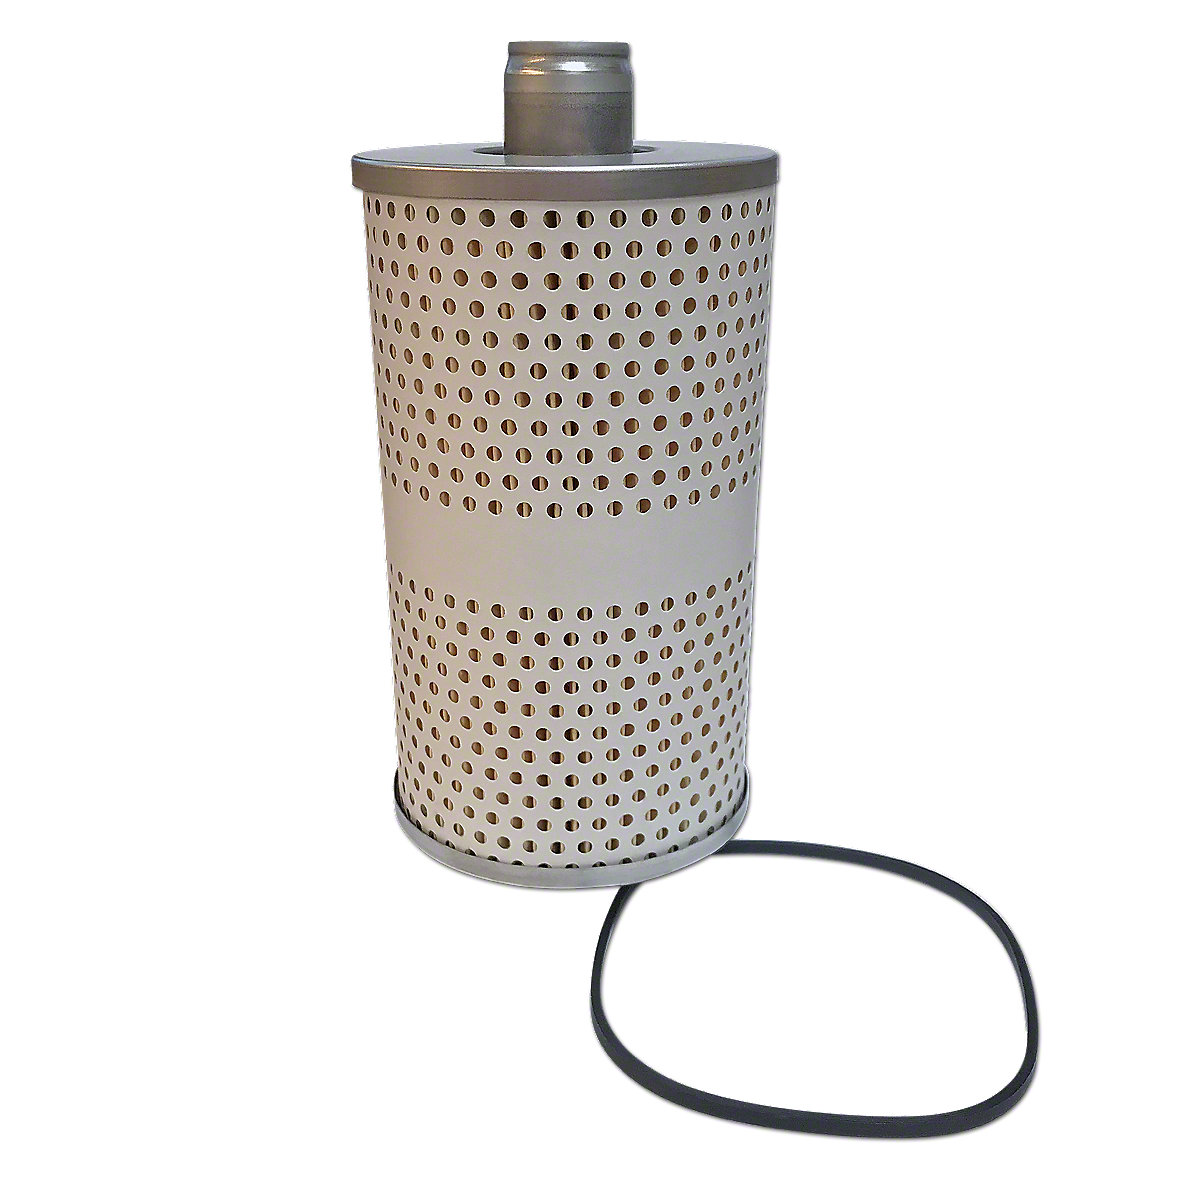 ABC094Oil Filter Element With Gasket